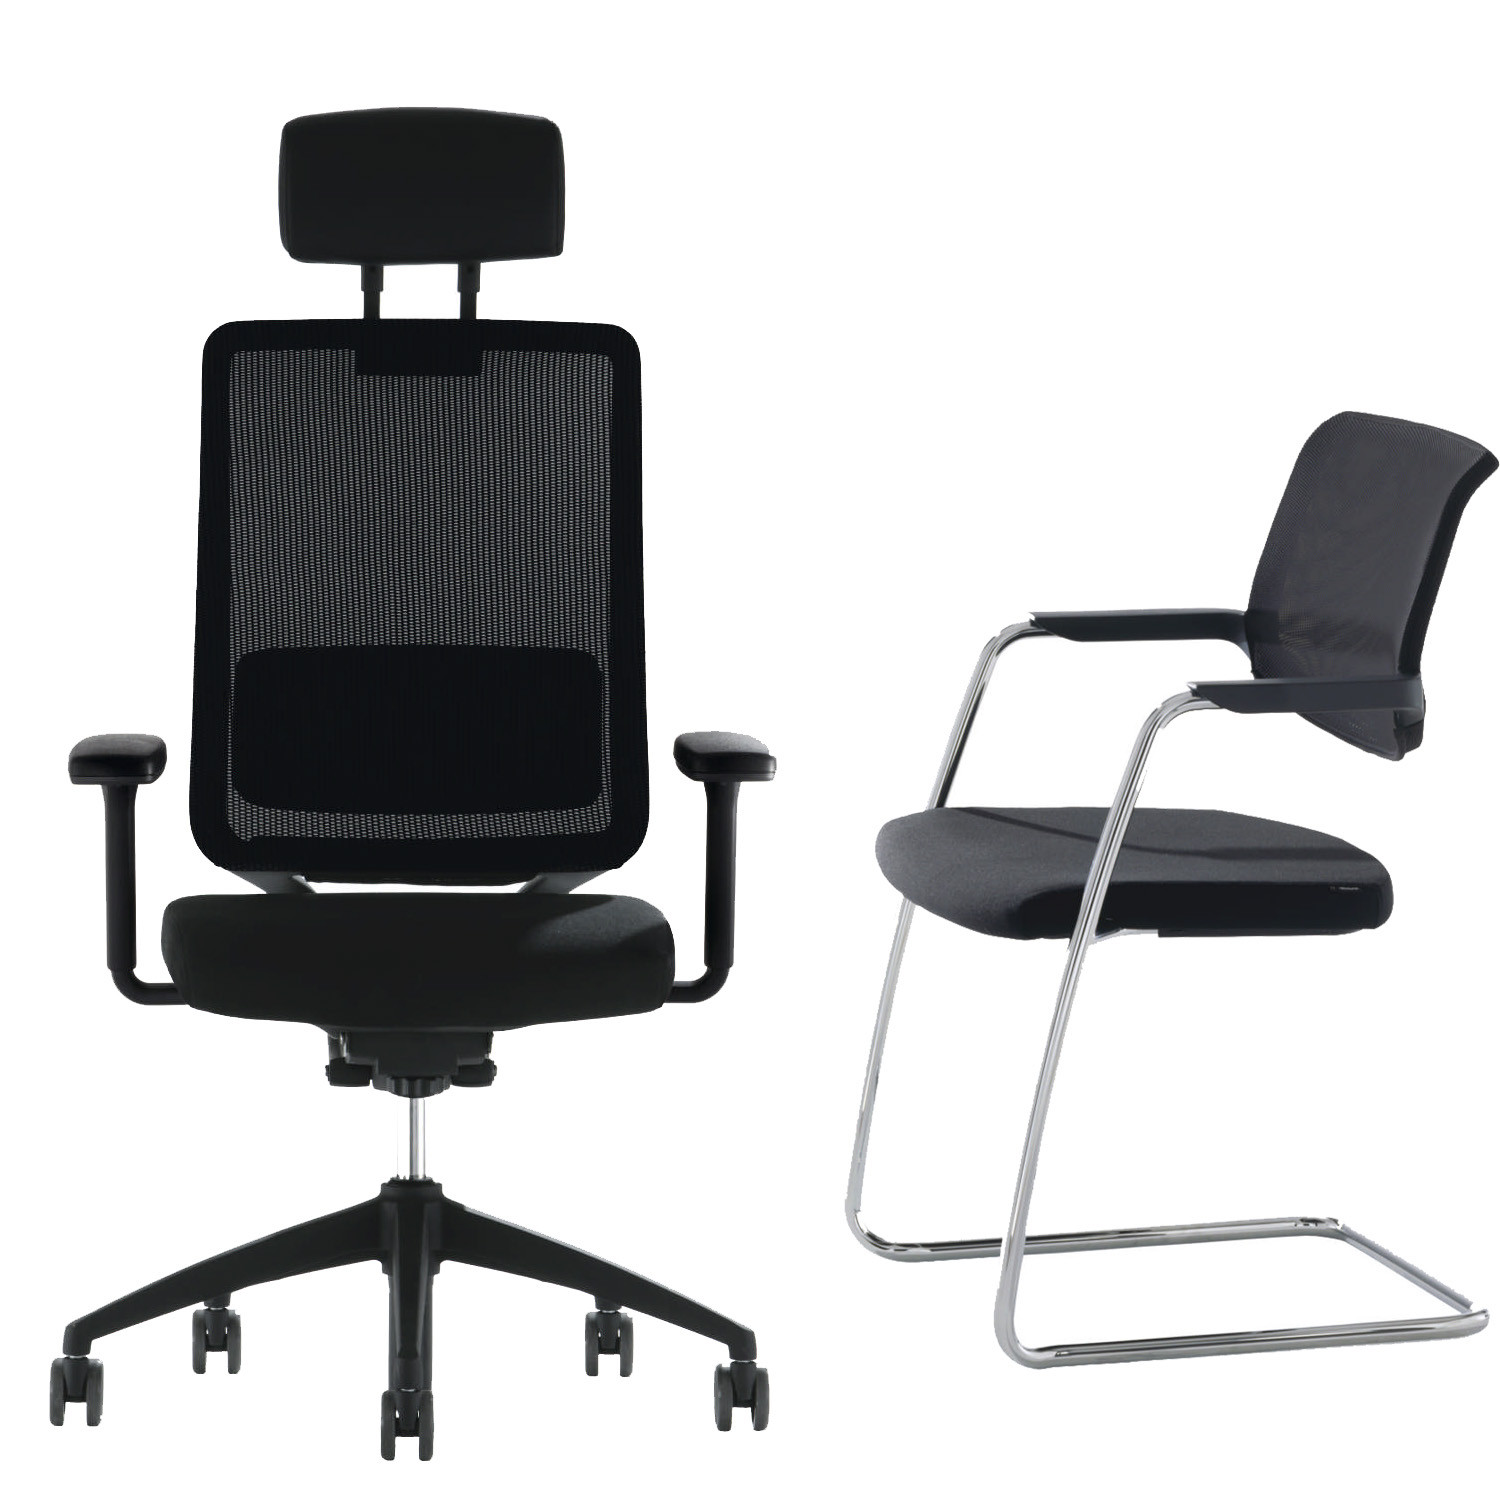 Too Mesh Office Seating Range